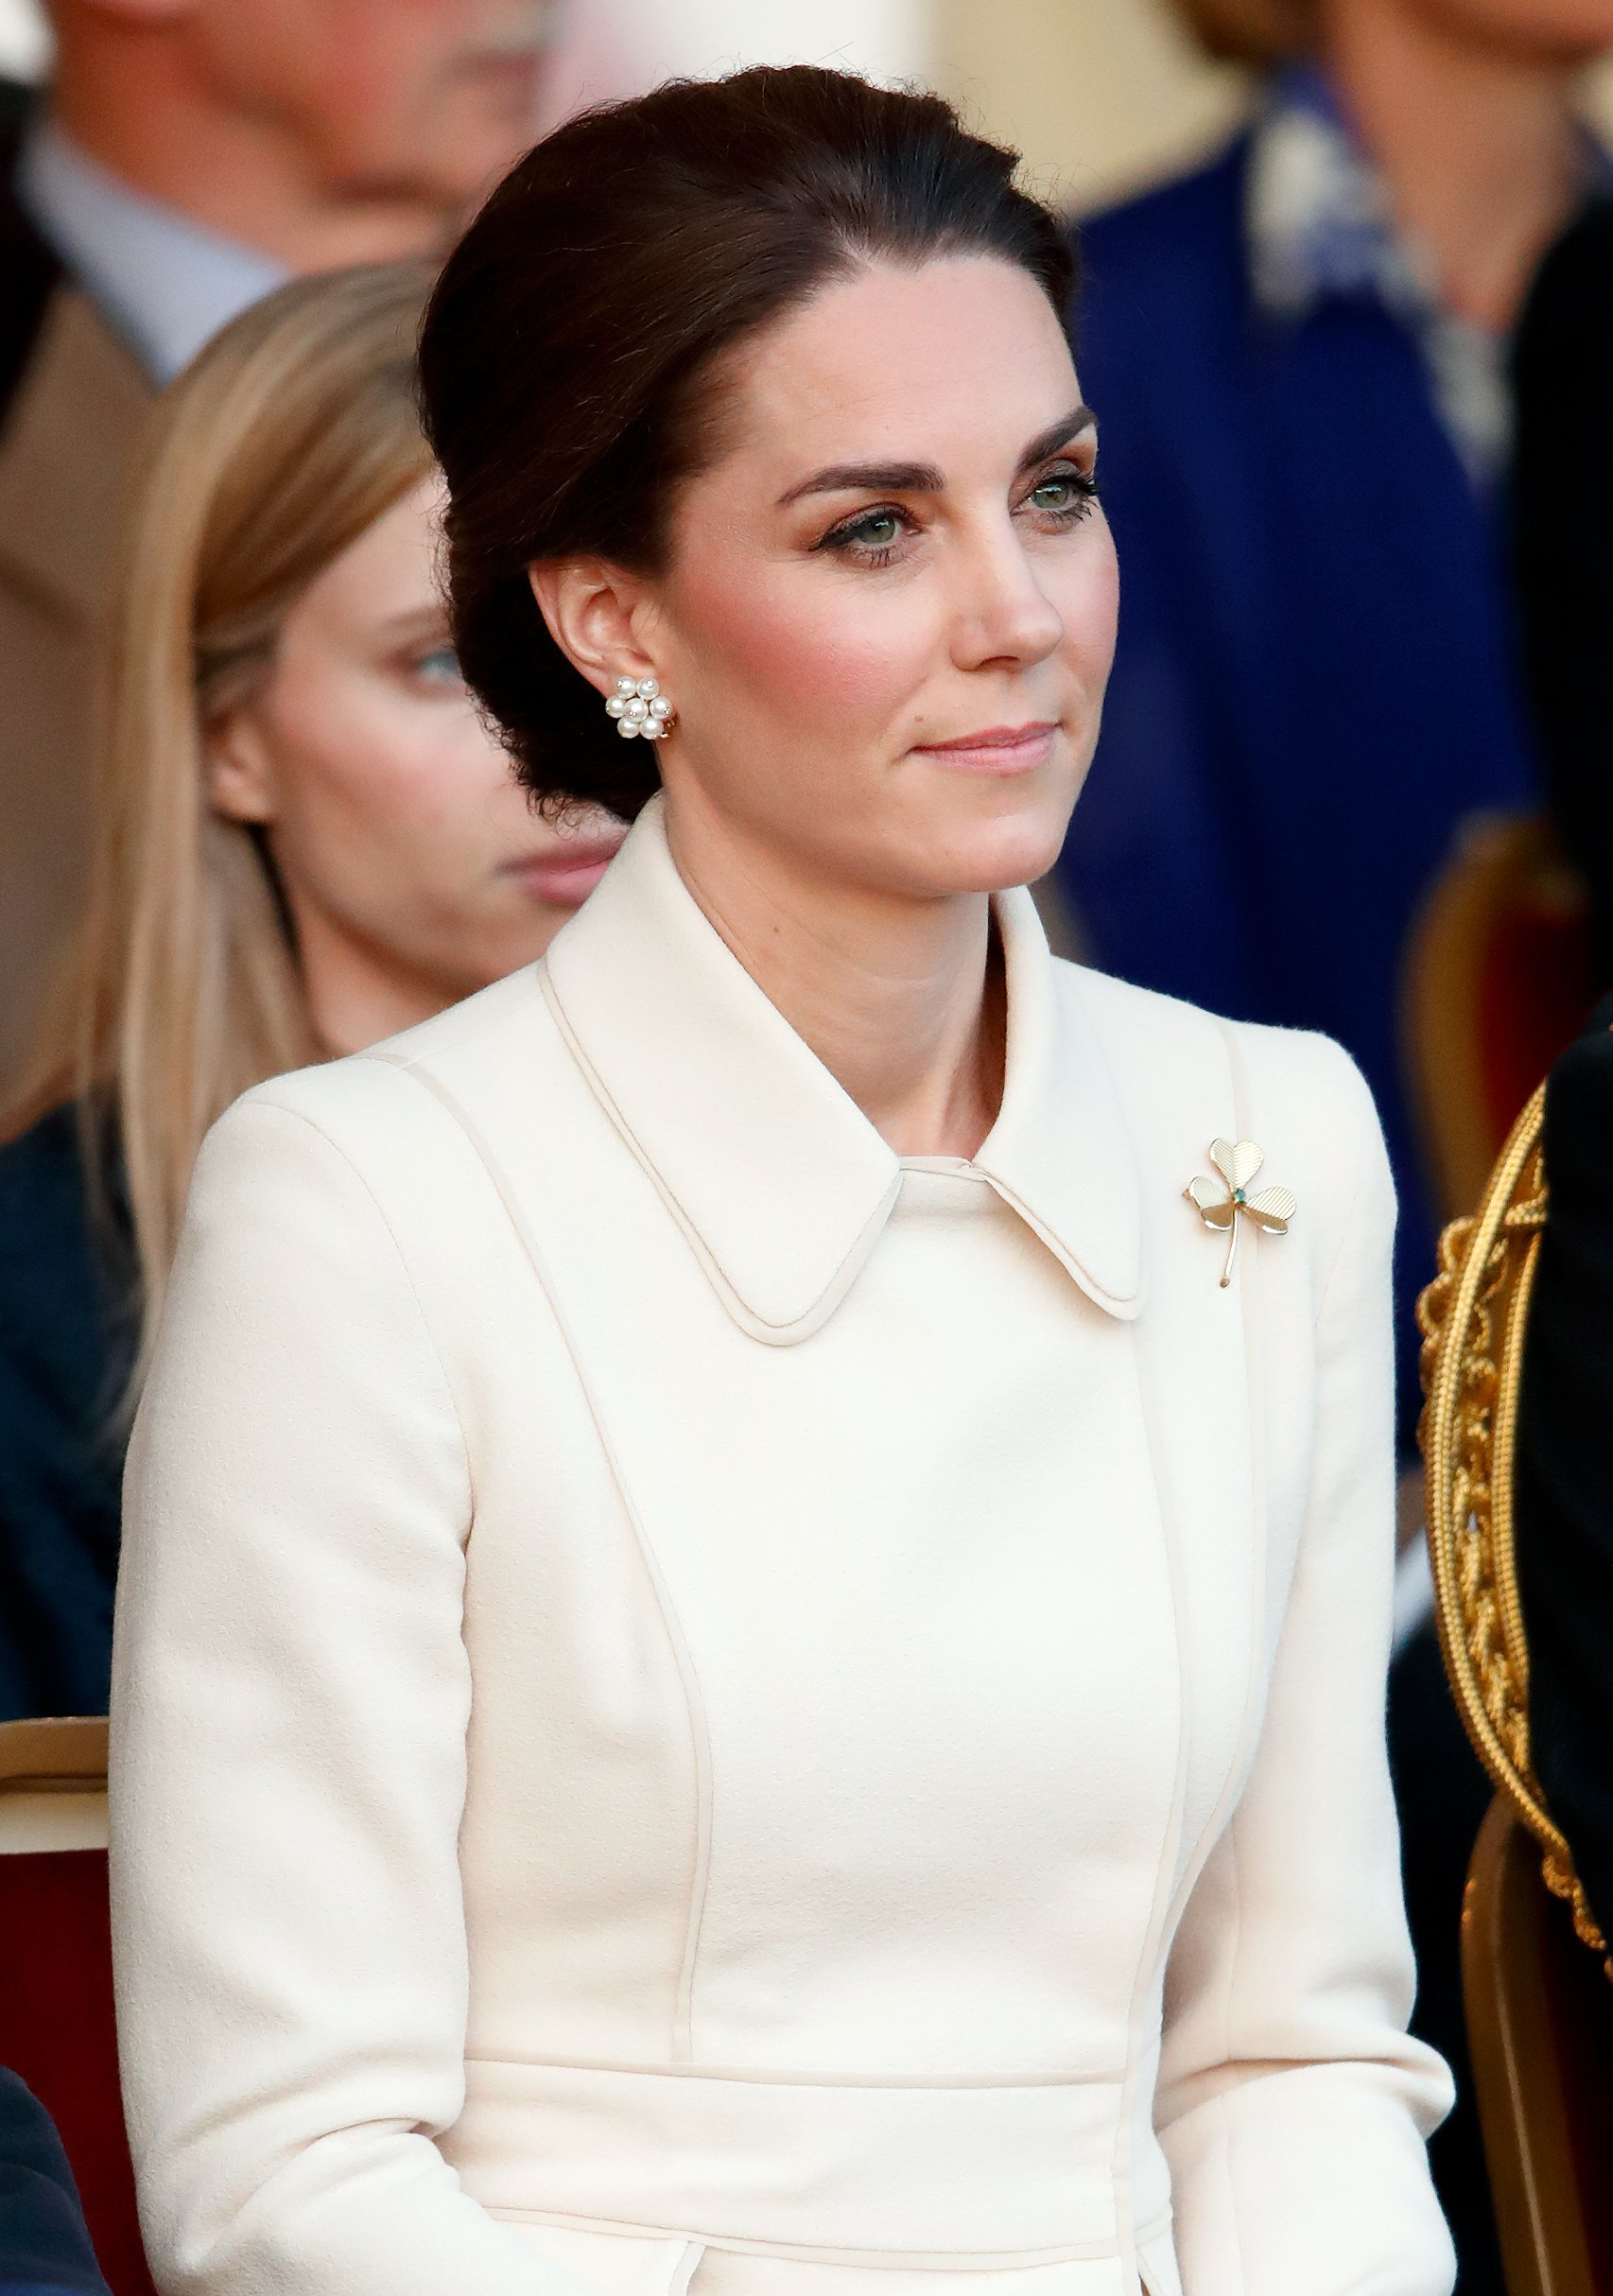 Catherine, Duchess of Cambridge attends the Household Division's 'Beating Retreat' at Horse Guards Parade on June 6, 2019 in London, England. | Photo: GettyImages